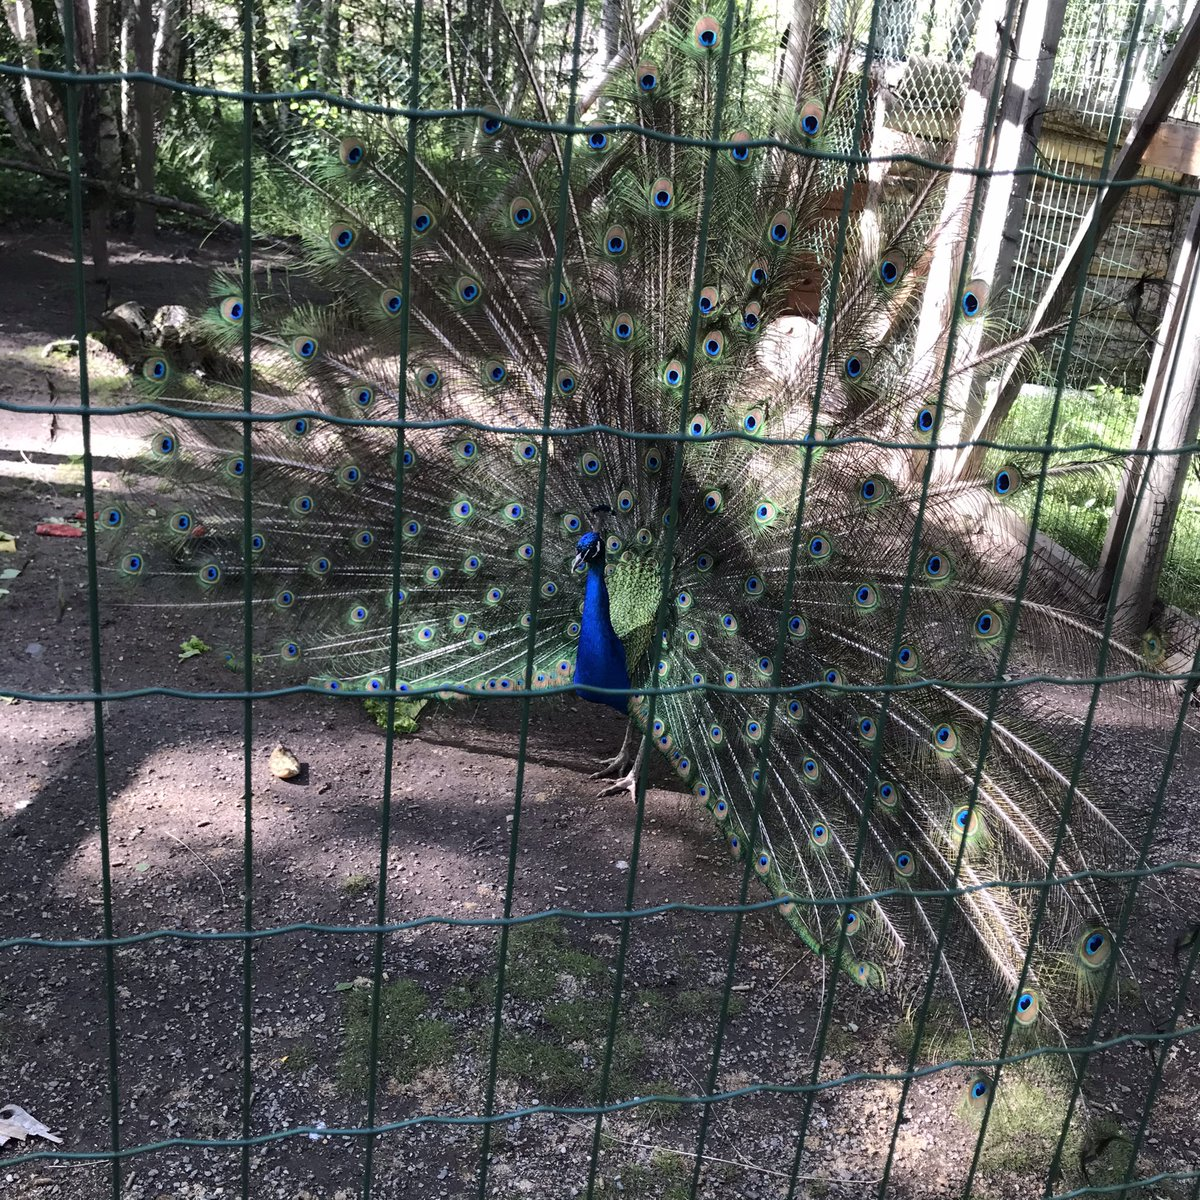 Word is spreading in the zoo about #LUFC lead and @Kalvinphillips @Patrick_Bamford goals and now the peacocks are out in fashion! https://t.co/NuWpxYjFlm